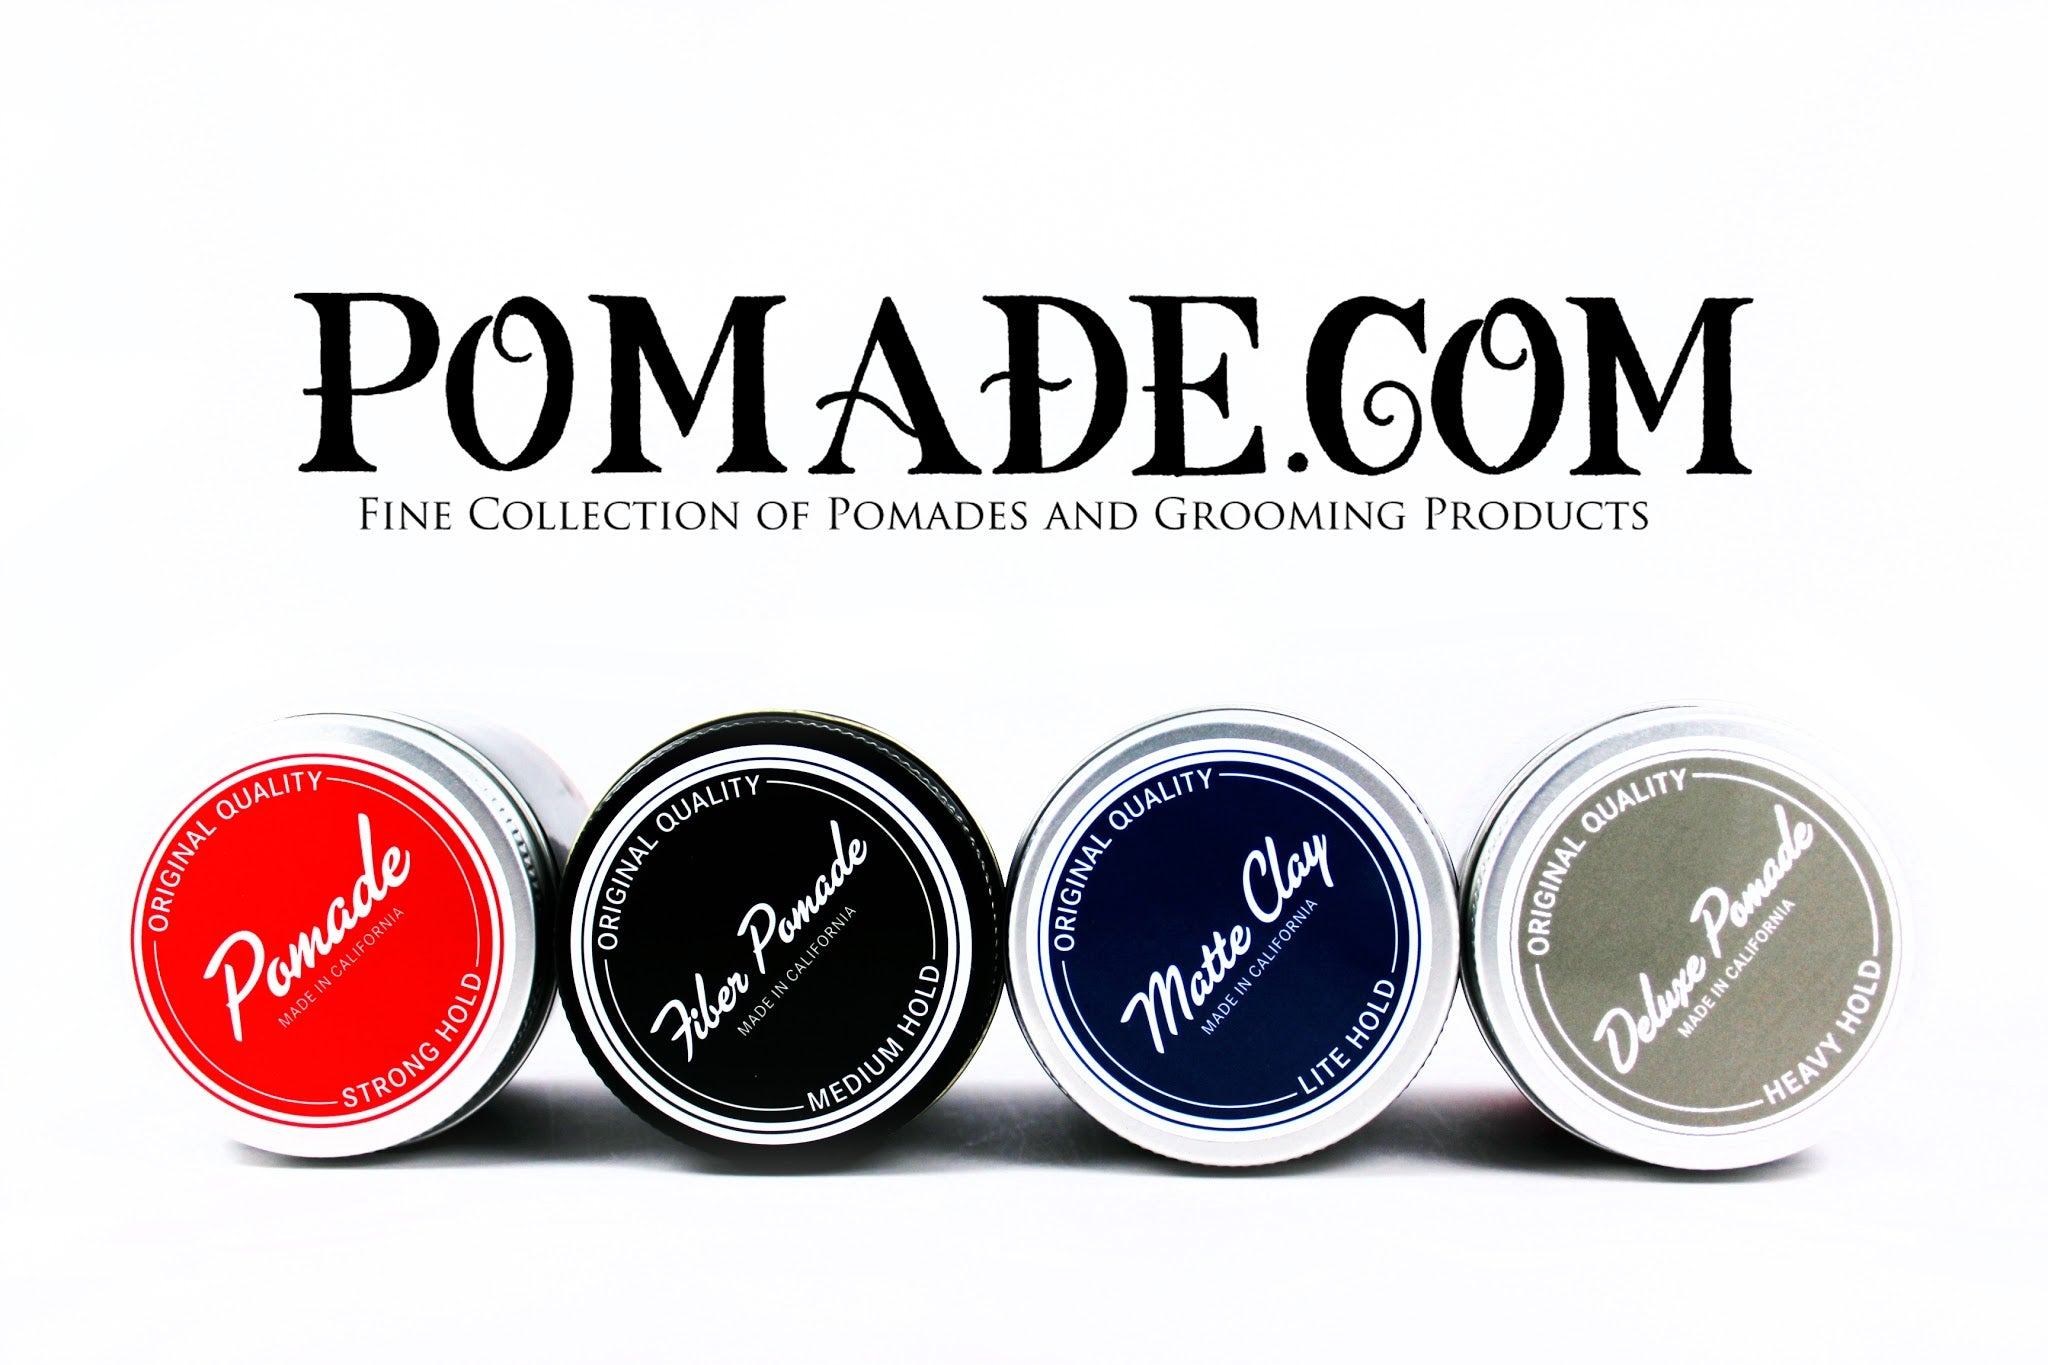 Admiral Pomade Back In Stock Only at Pomade.com